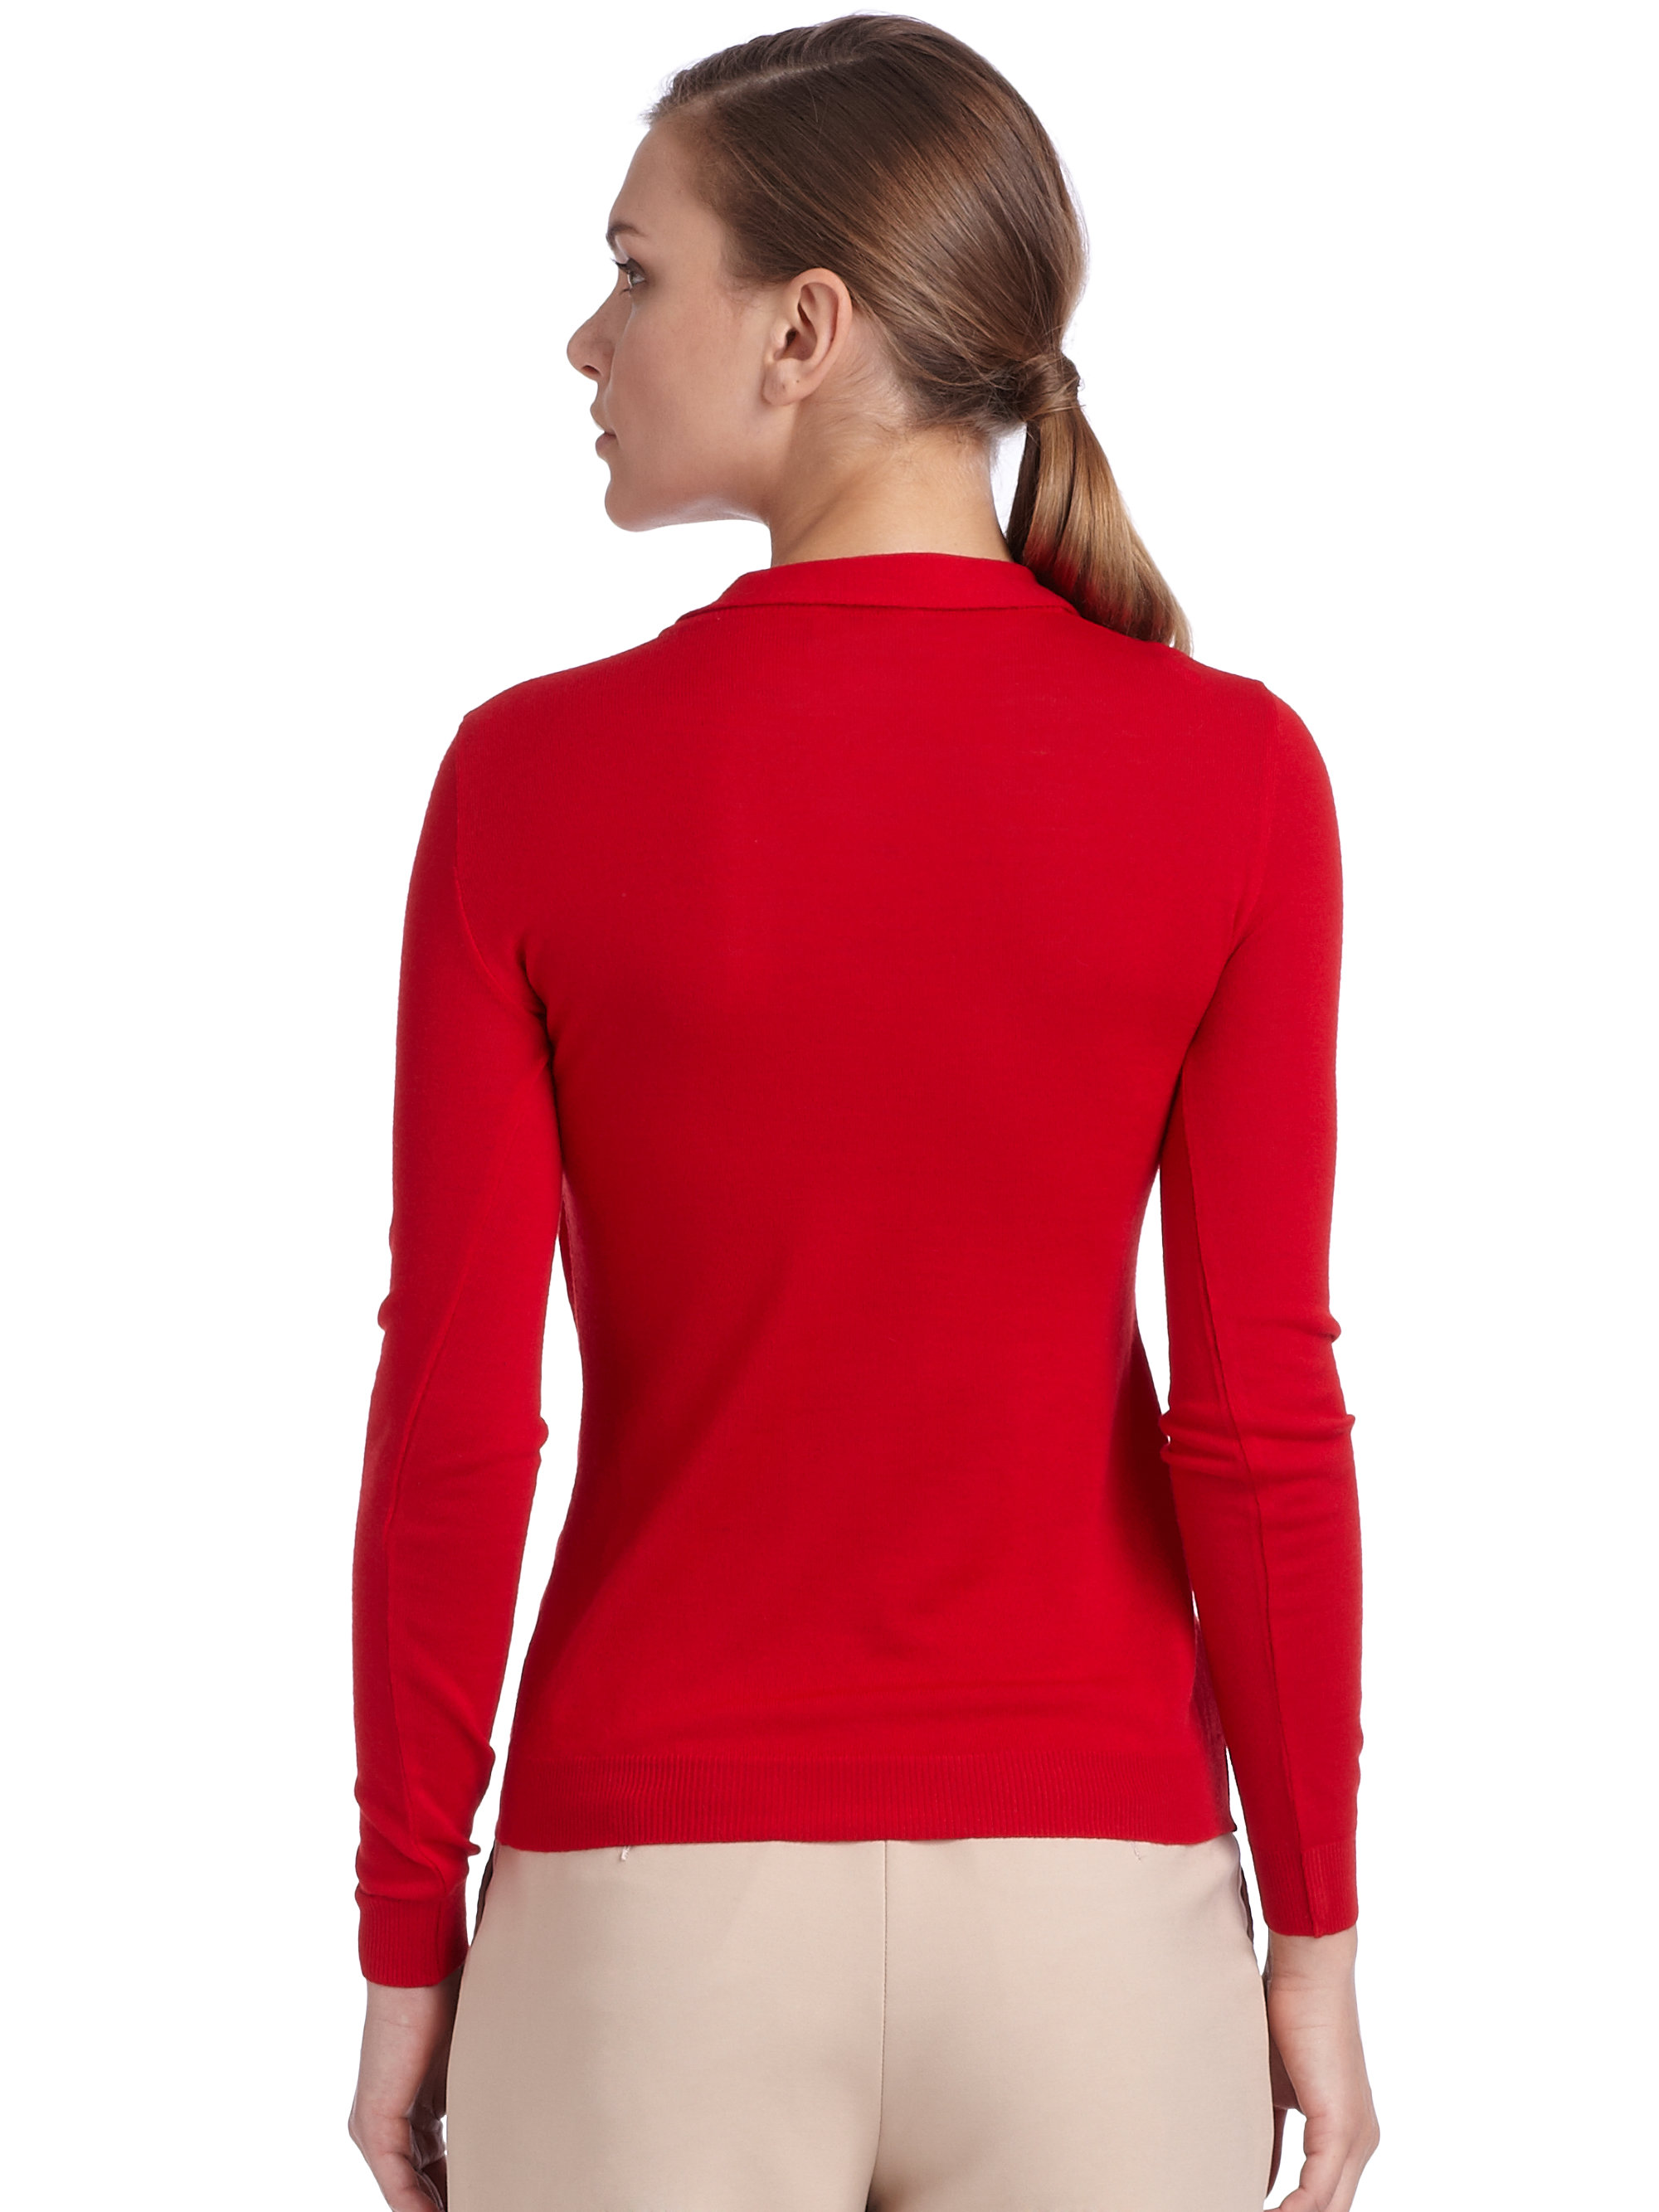 Boutique moschino Wool Draped Tie Neck Sweater in Red | Lyst